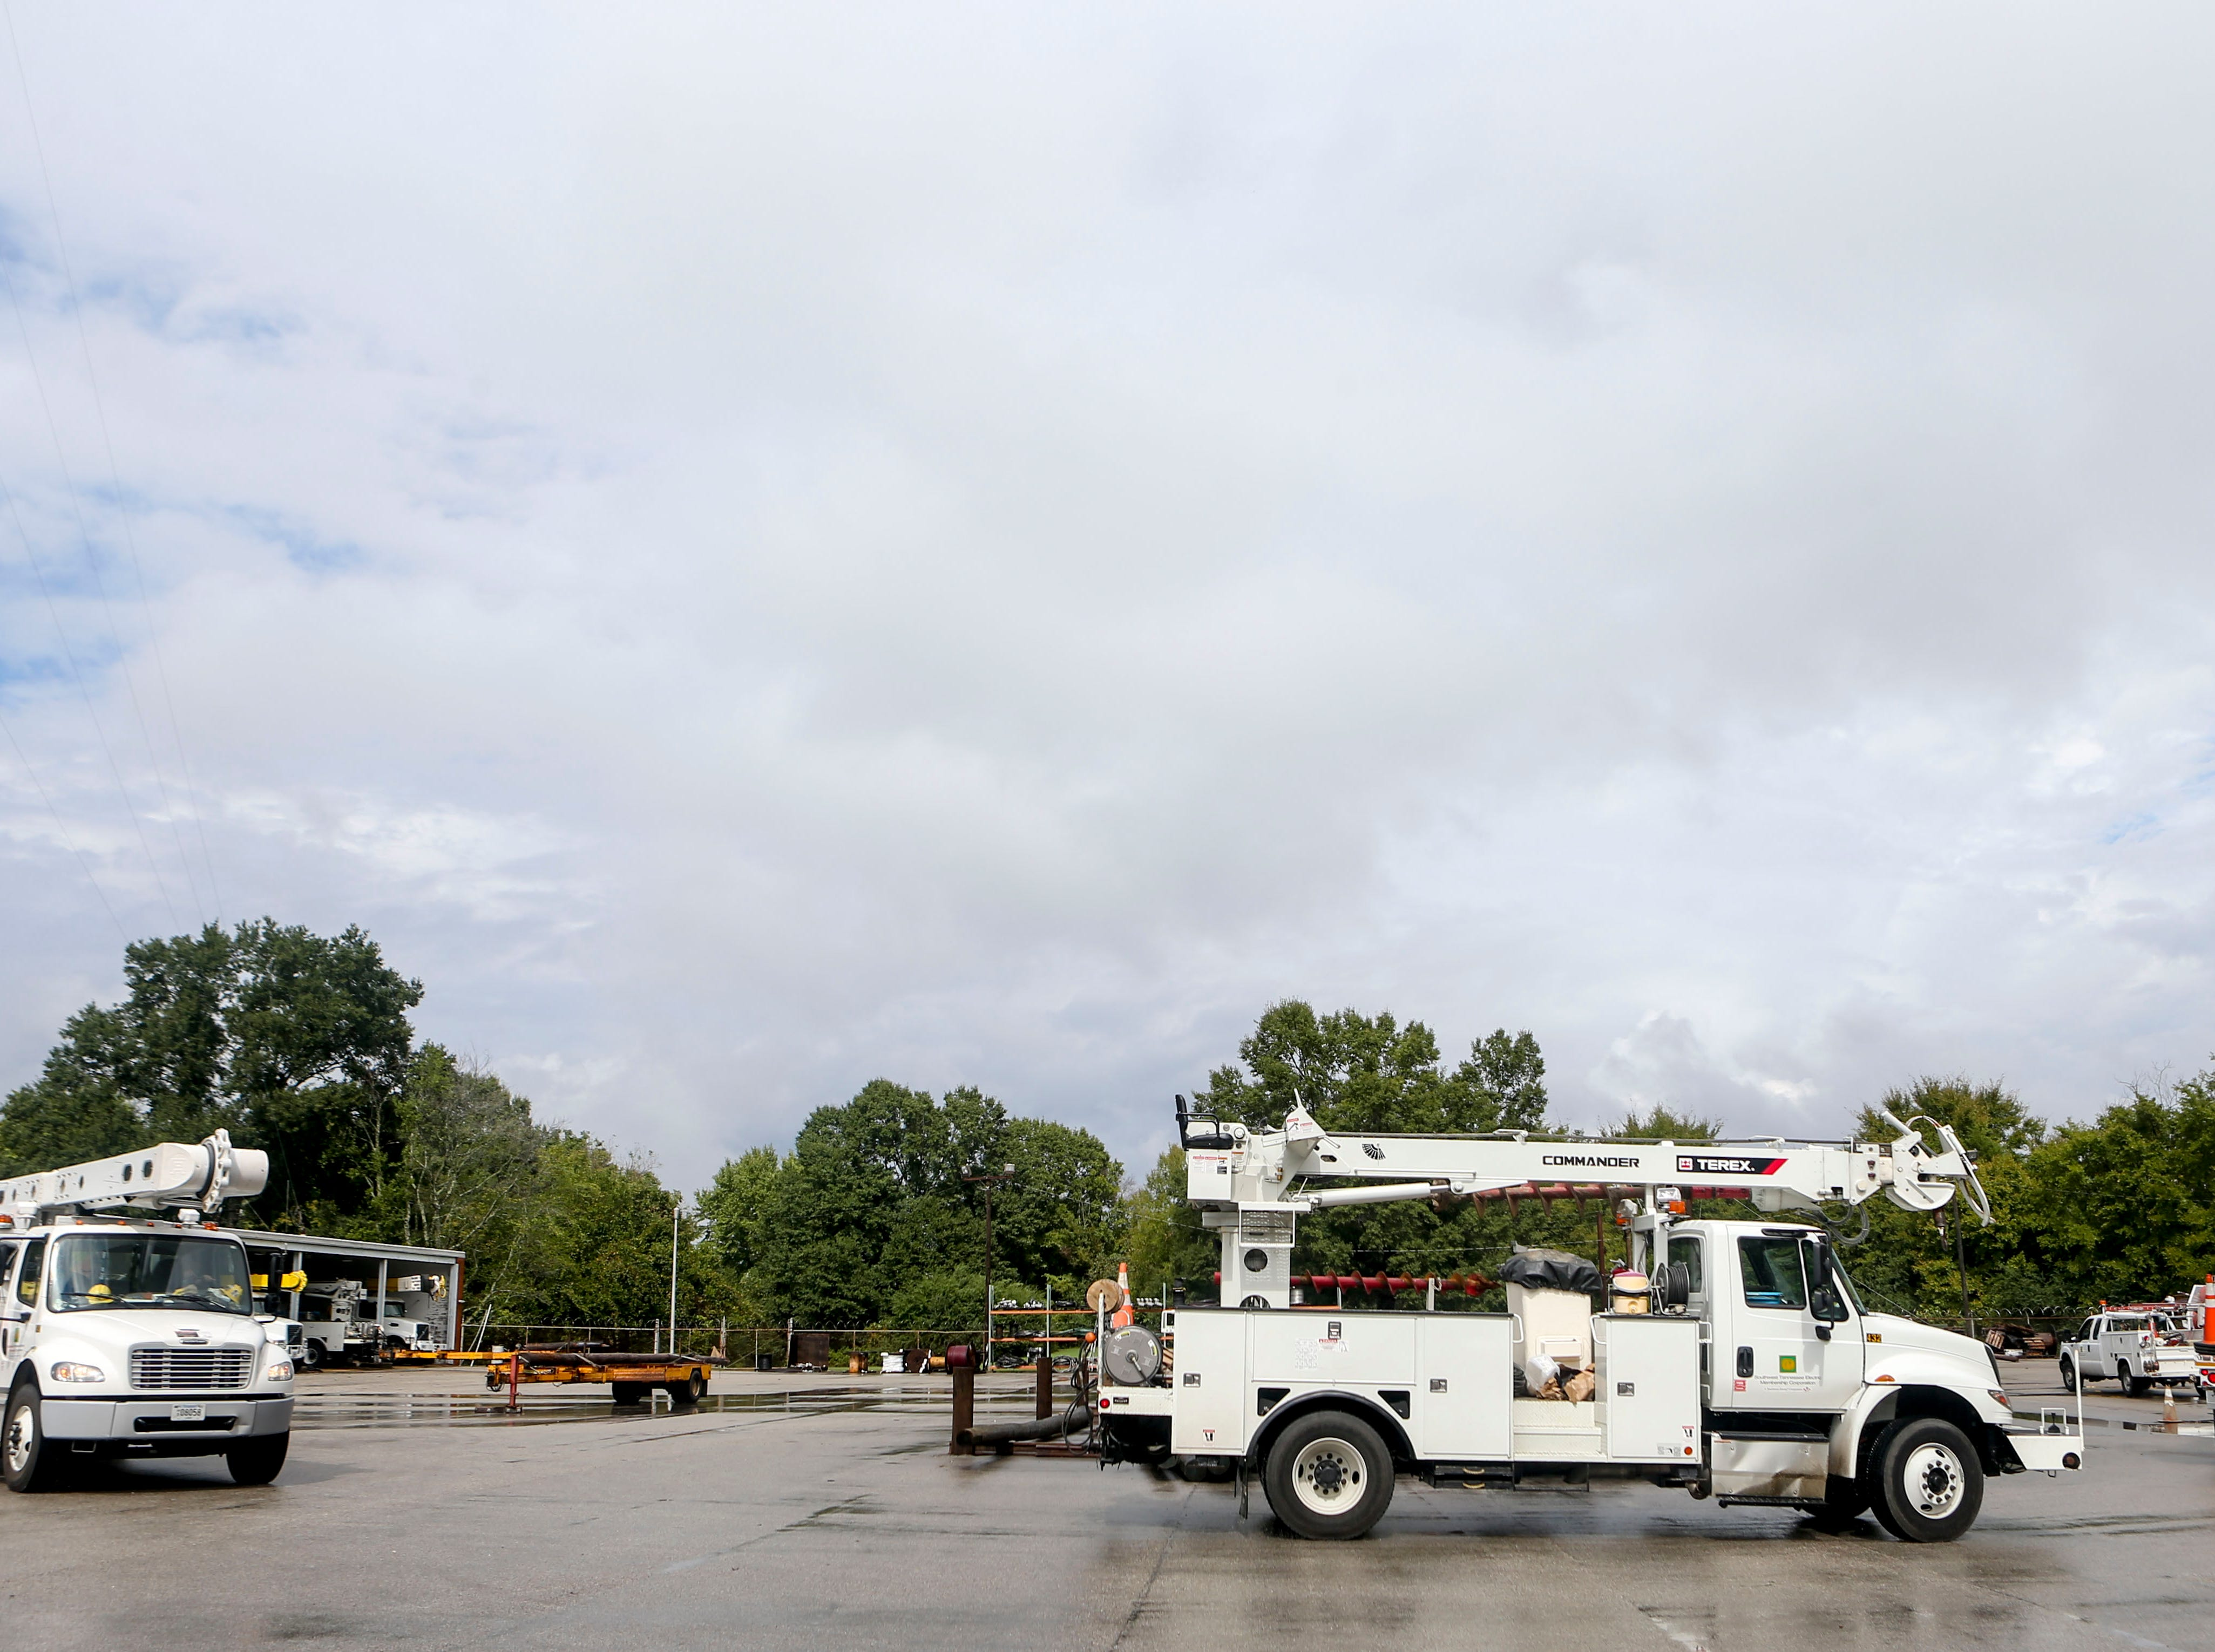 Linemen pull in to the truck yard after having been dispatched to areas affected by Hurricane Florence in North Carolina at Southwest Tennessee Electric in Jackson, Tenn., Monday, Sept. 24, 2018.